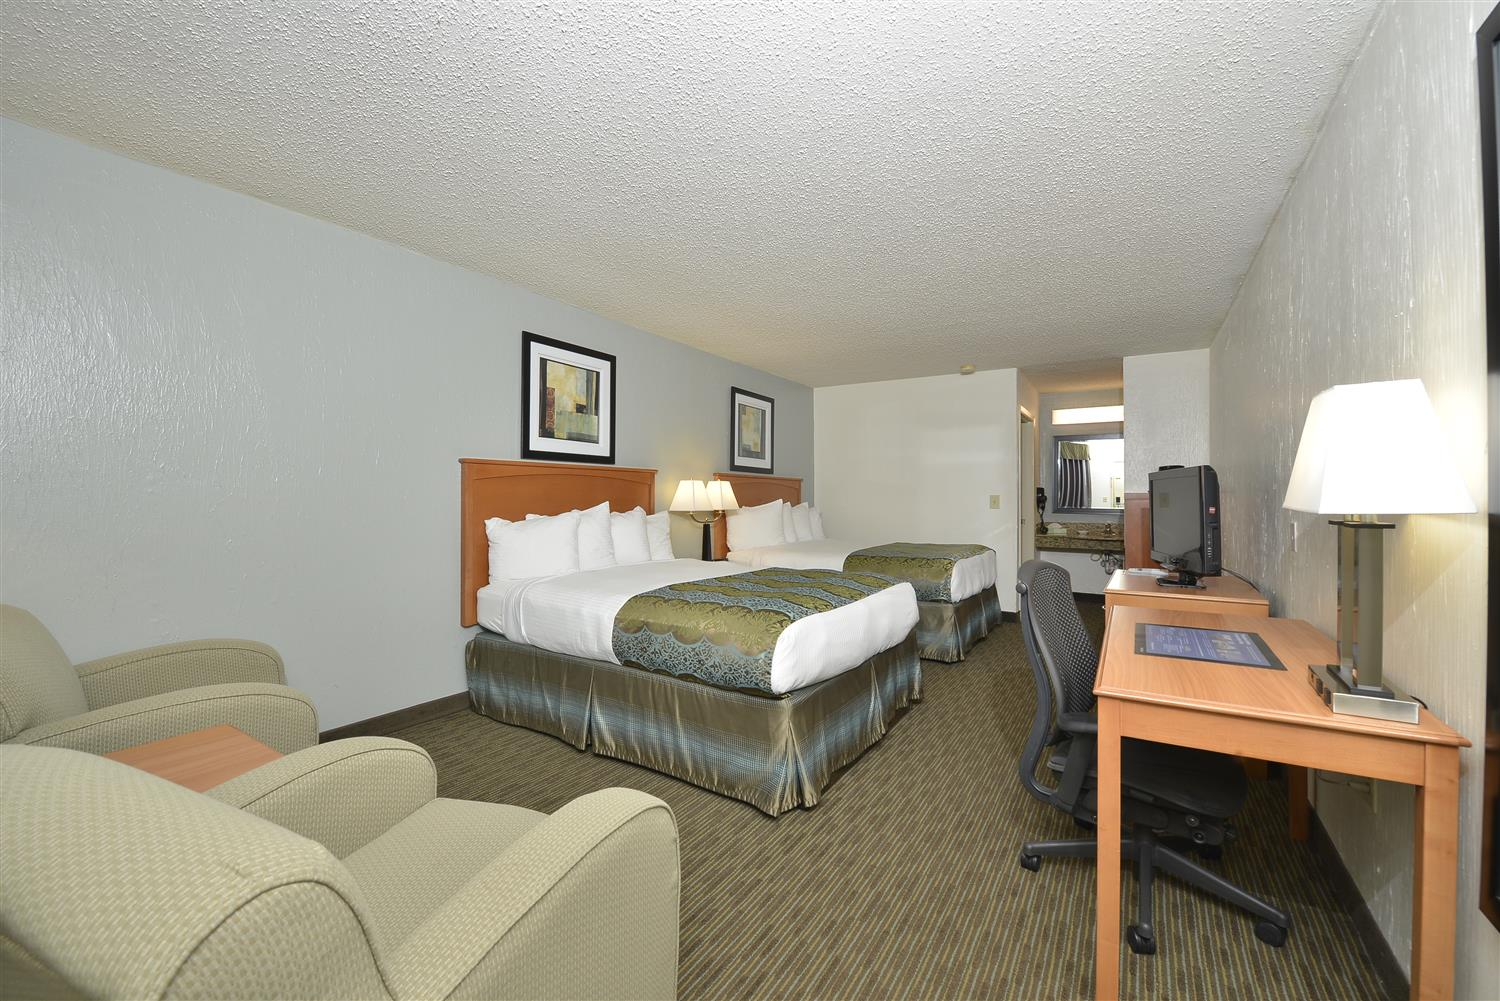 Our Comfortable Two Queen Guest Room Includes Microwave And Refrigerator